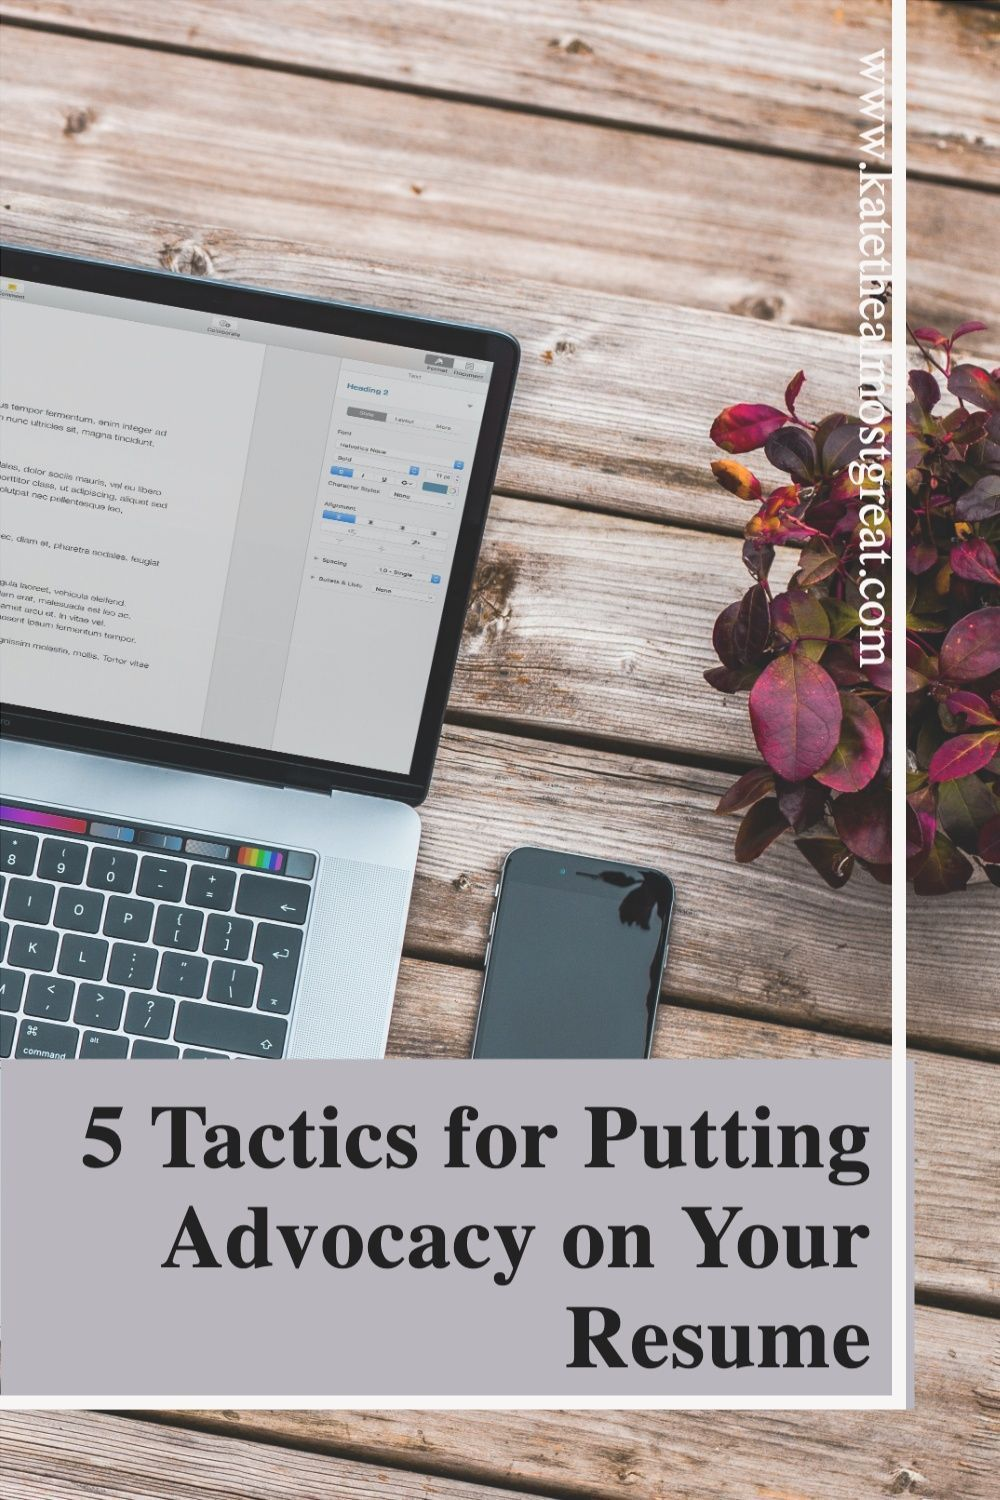 Summary Section Of Resume Of Resume Tips 5 Tactics for Putting Advocacy On Your Resume